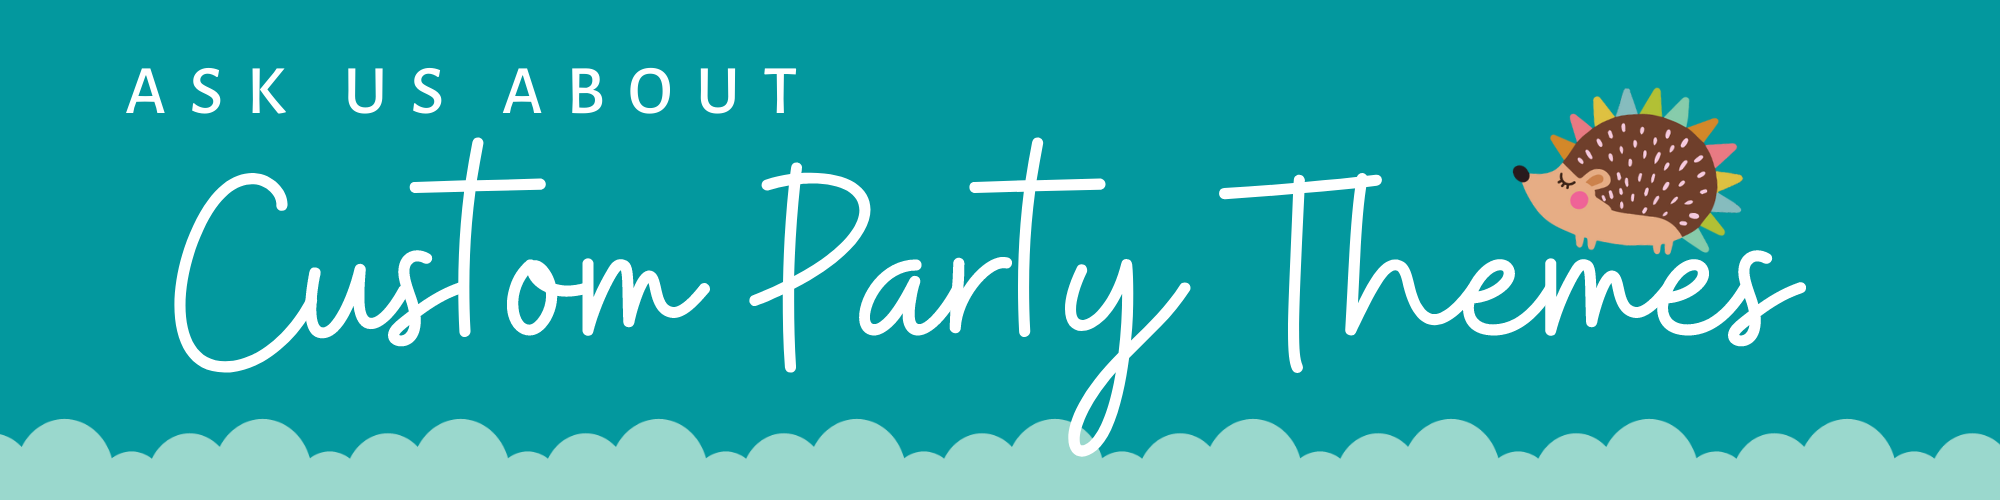 ask us about custom party themes